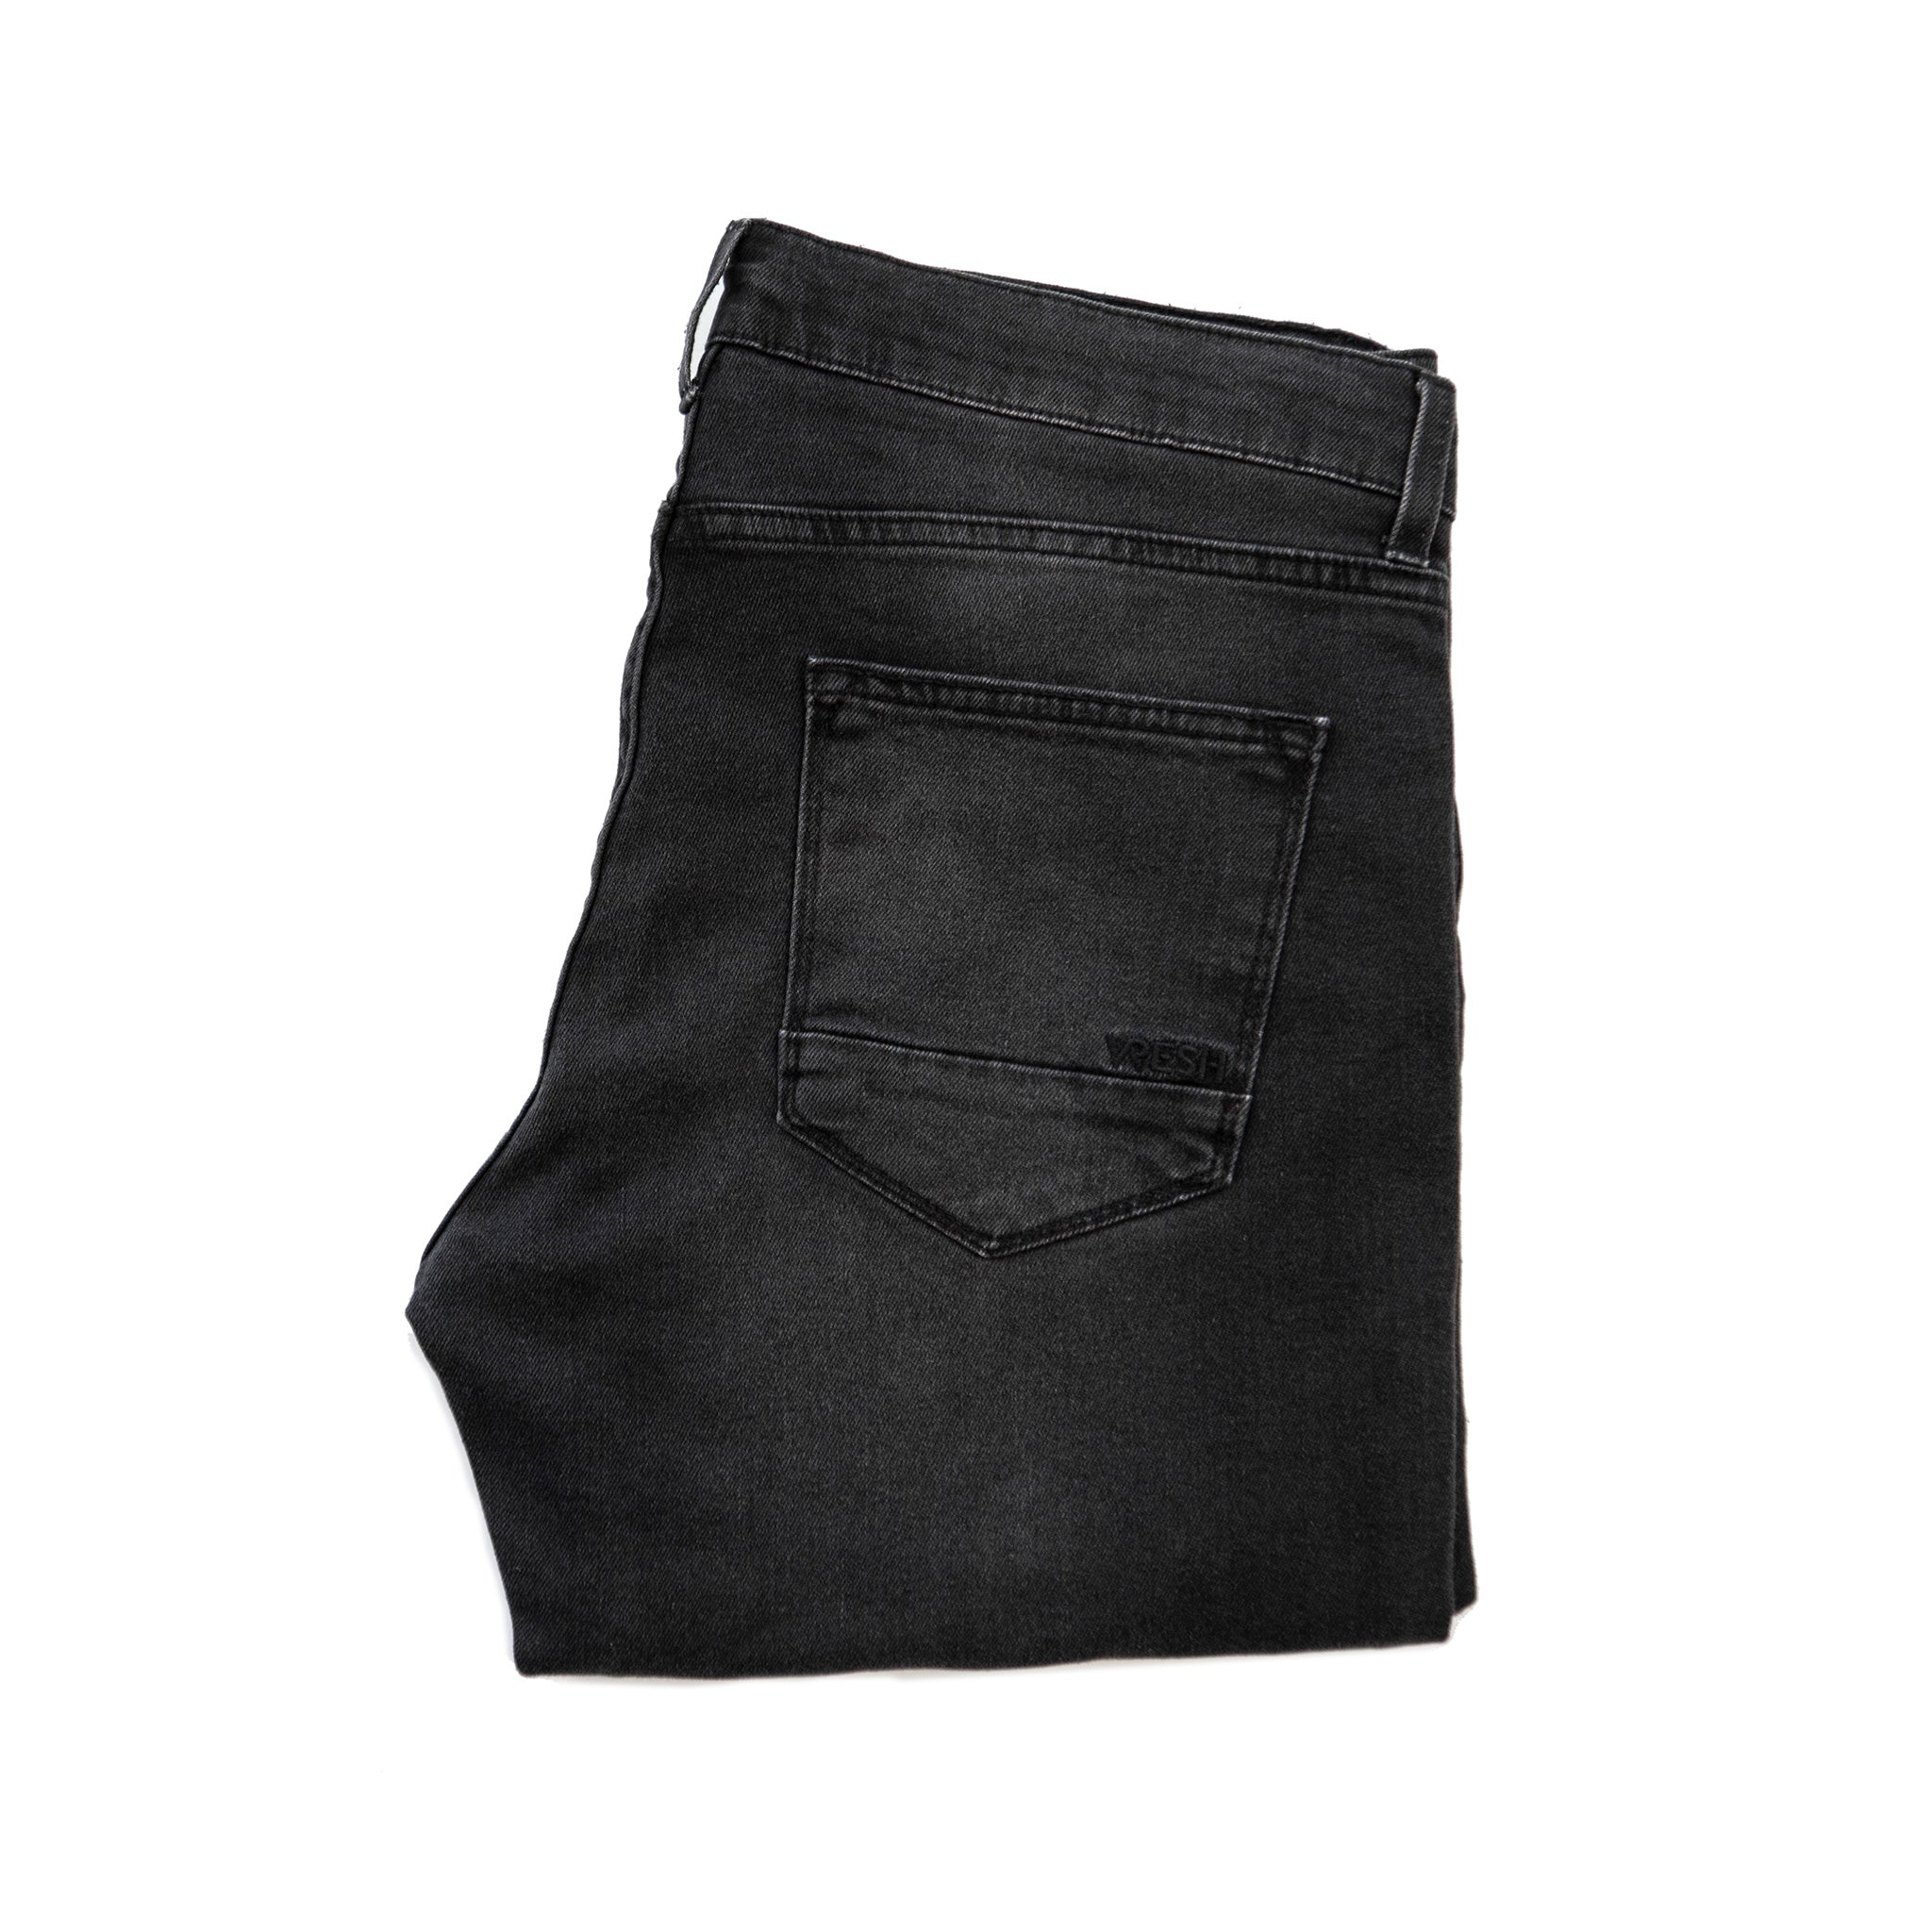 Vresh Jeans 2.0, Shadow-black, SLIM FIT